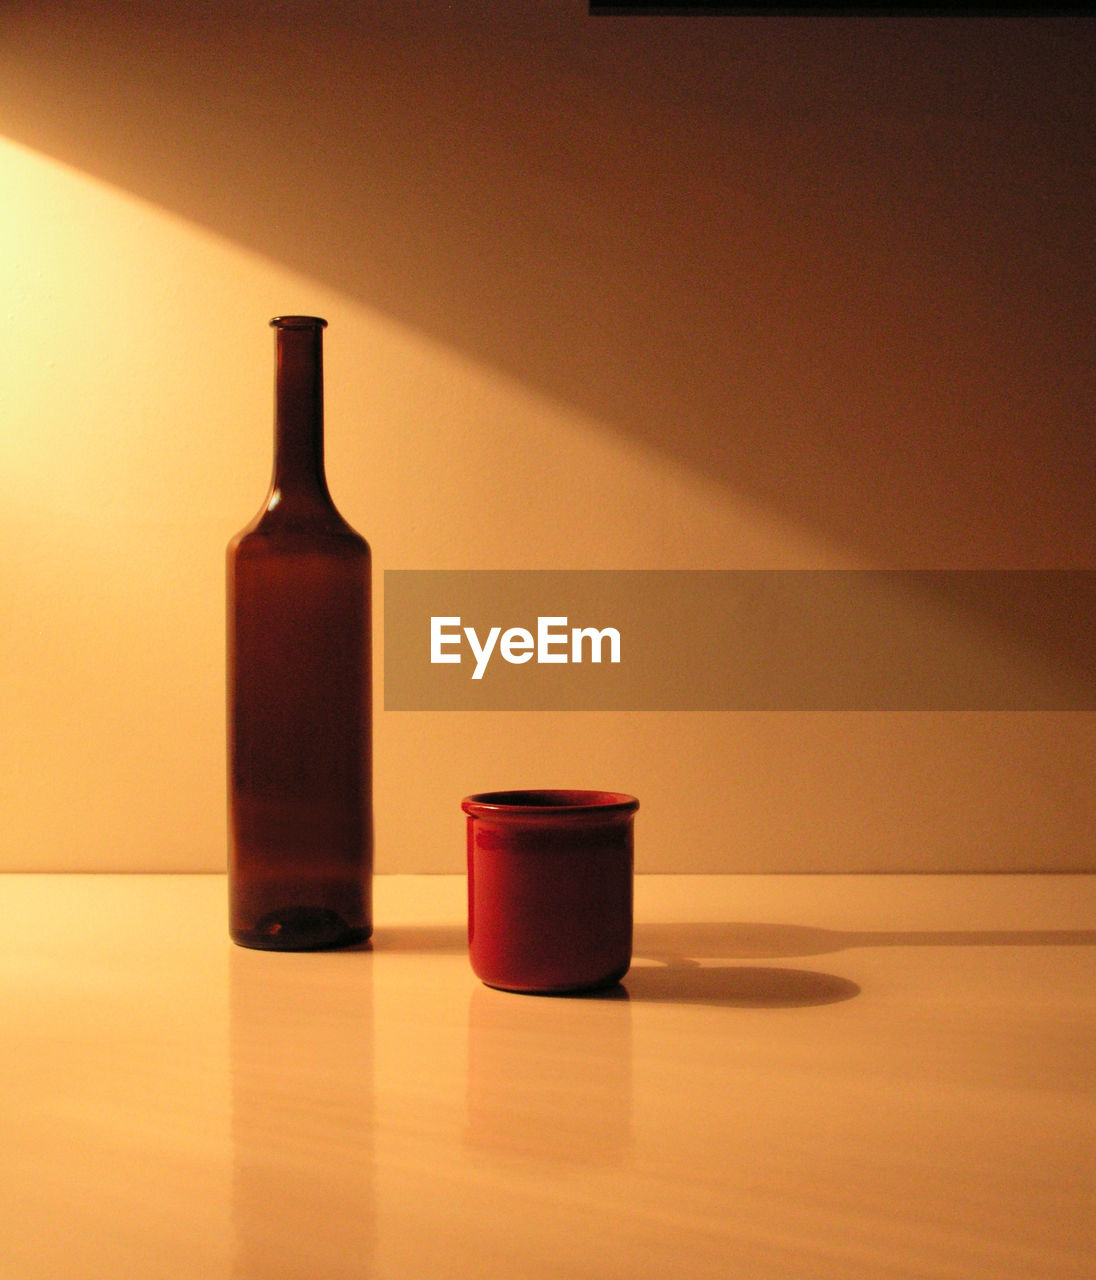 indoors, table, still life, bottle, container, no people, close-up, shadow, red, copy space, two objects, reflection, orange color, beauty product, glass - material, wall - building feature, simplicity, food and drink, lid, beauty